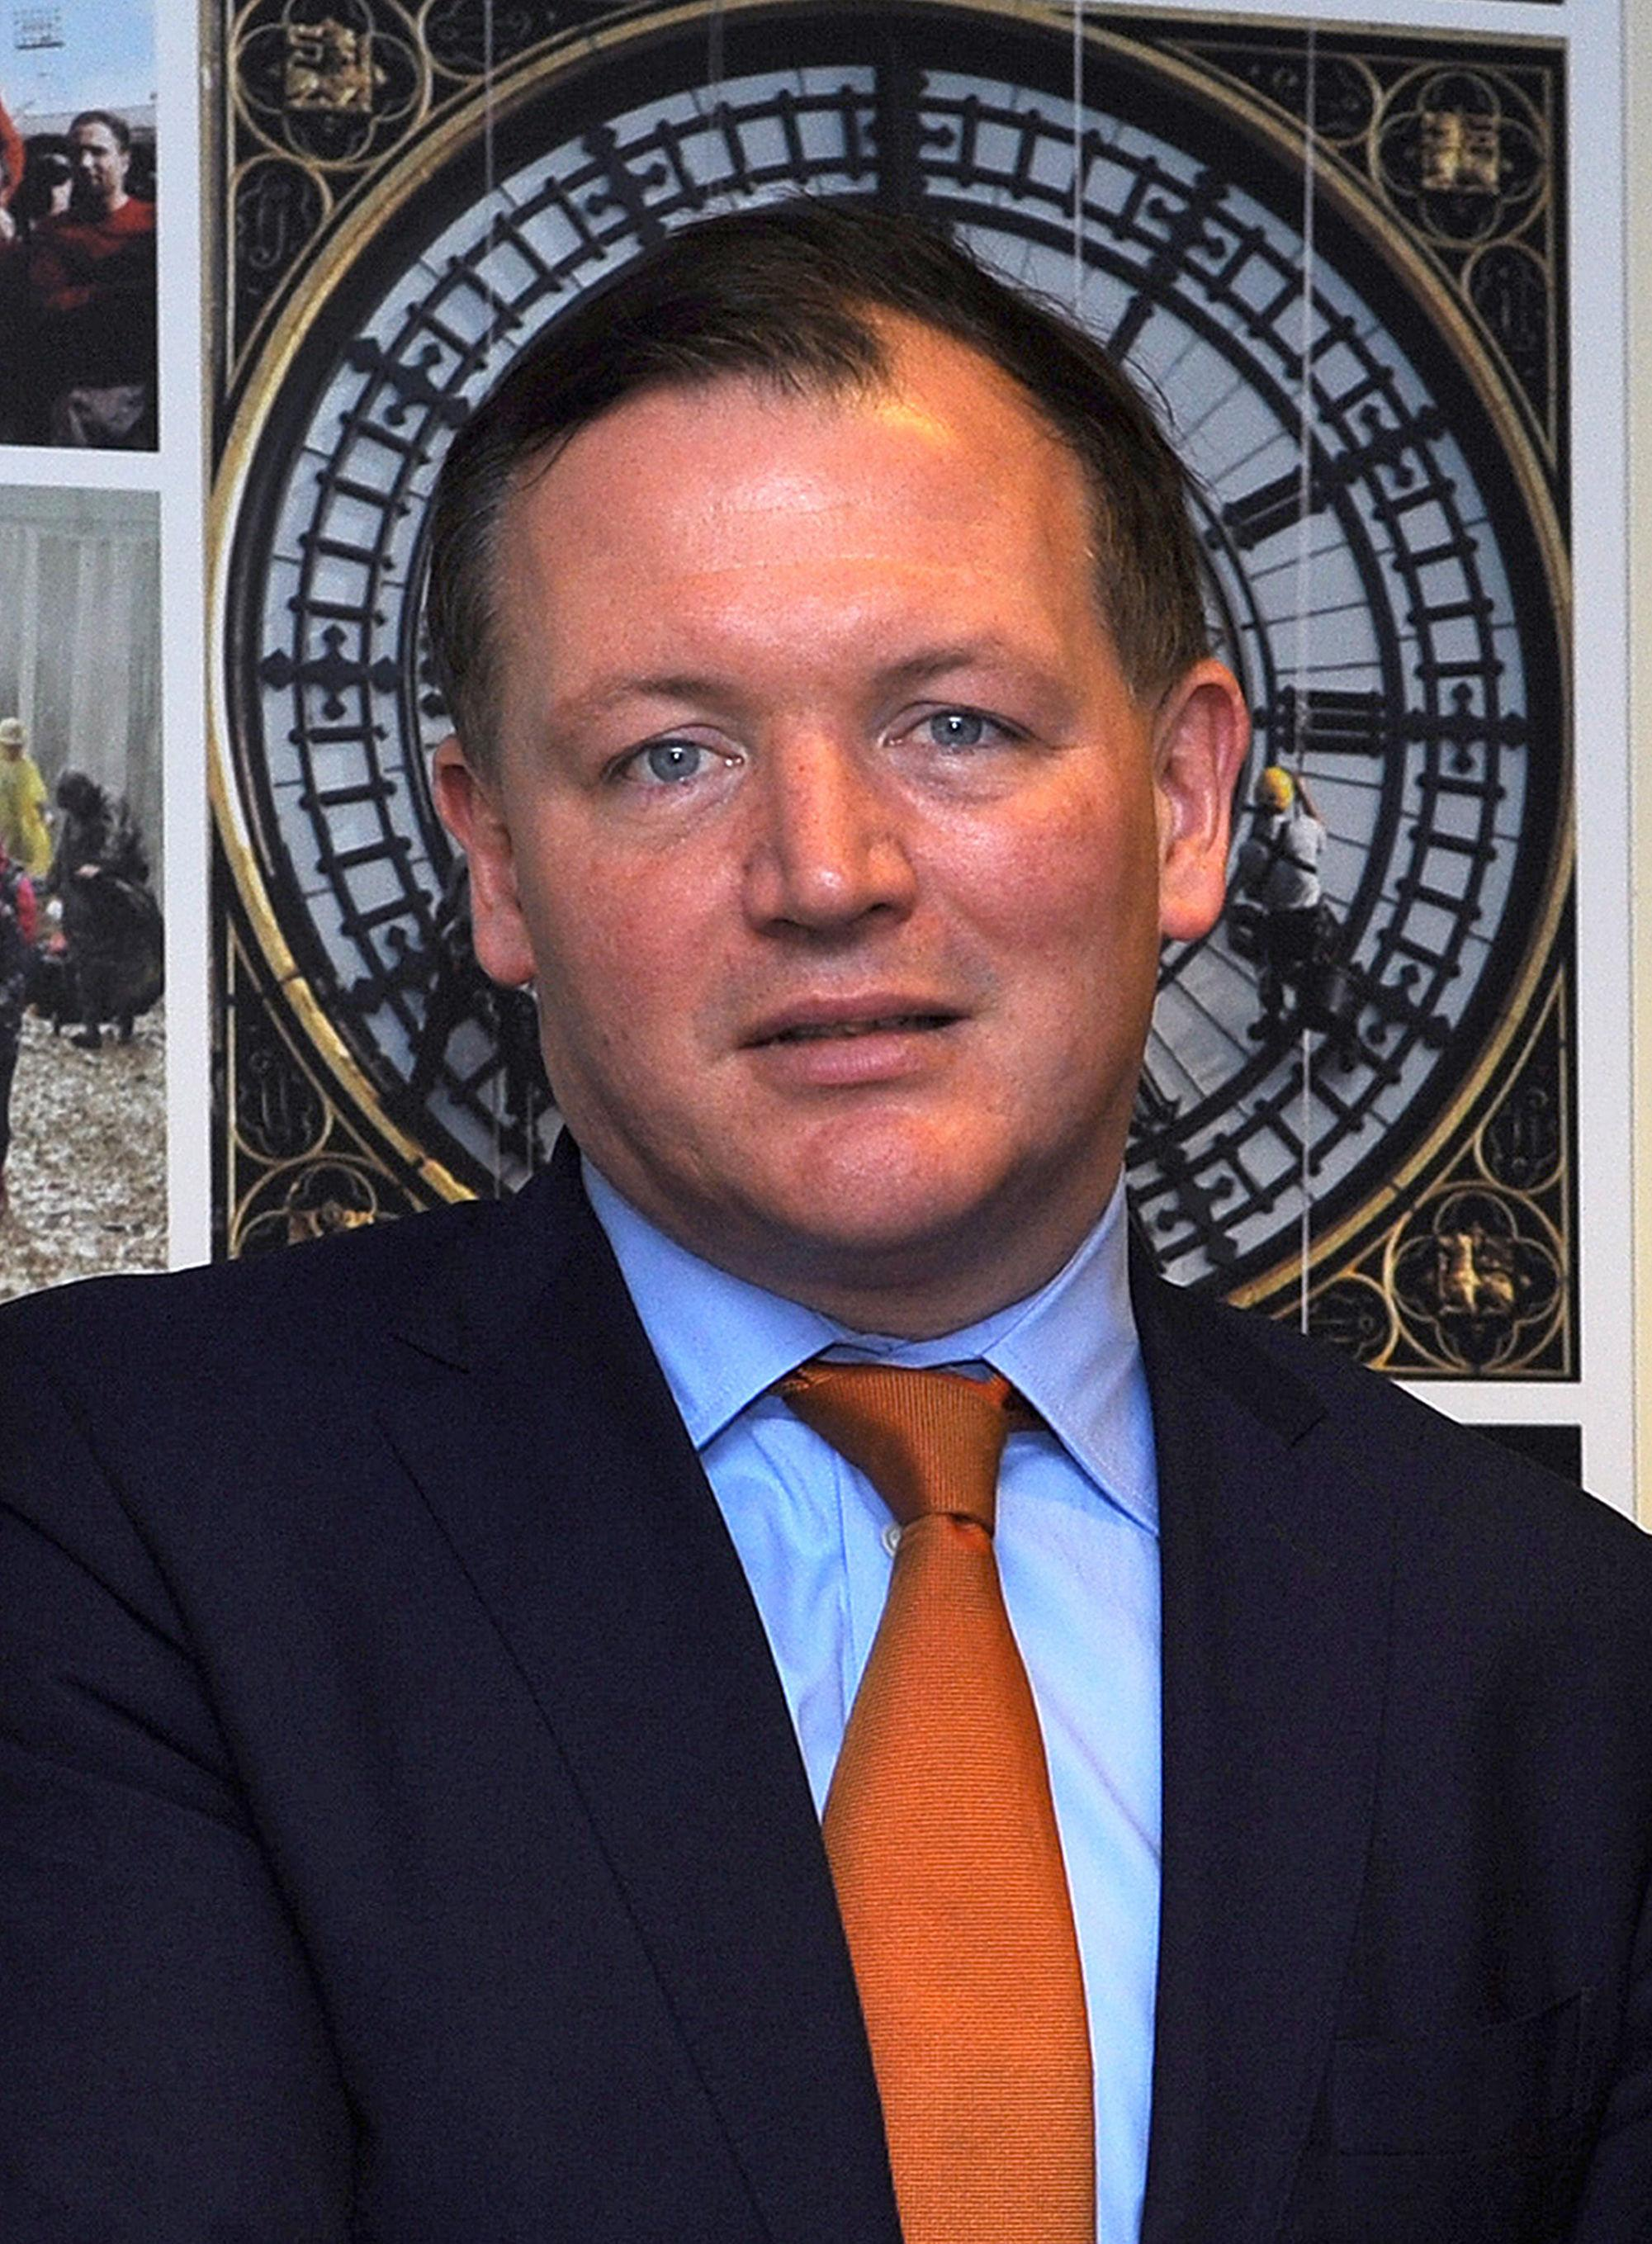 Damian Collins led the Parliamentary inquiry looking into doping in sport